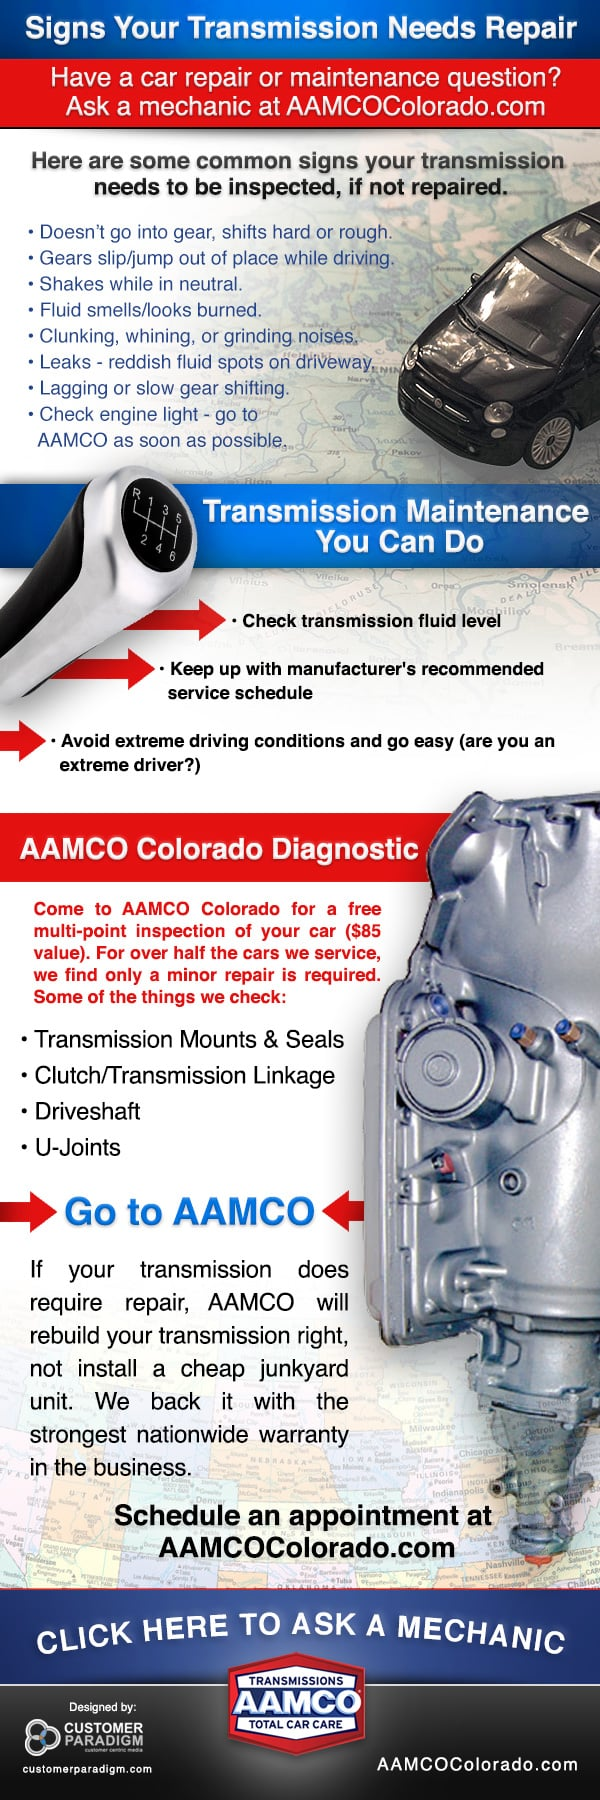 Infographic - Signs Your Transmission Needs Repair